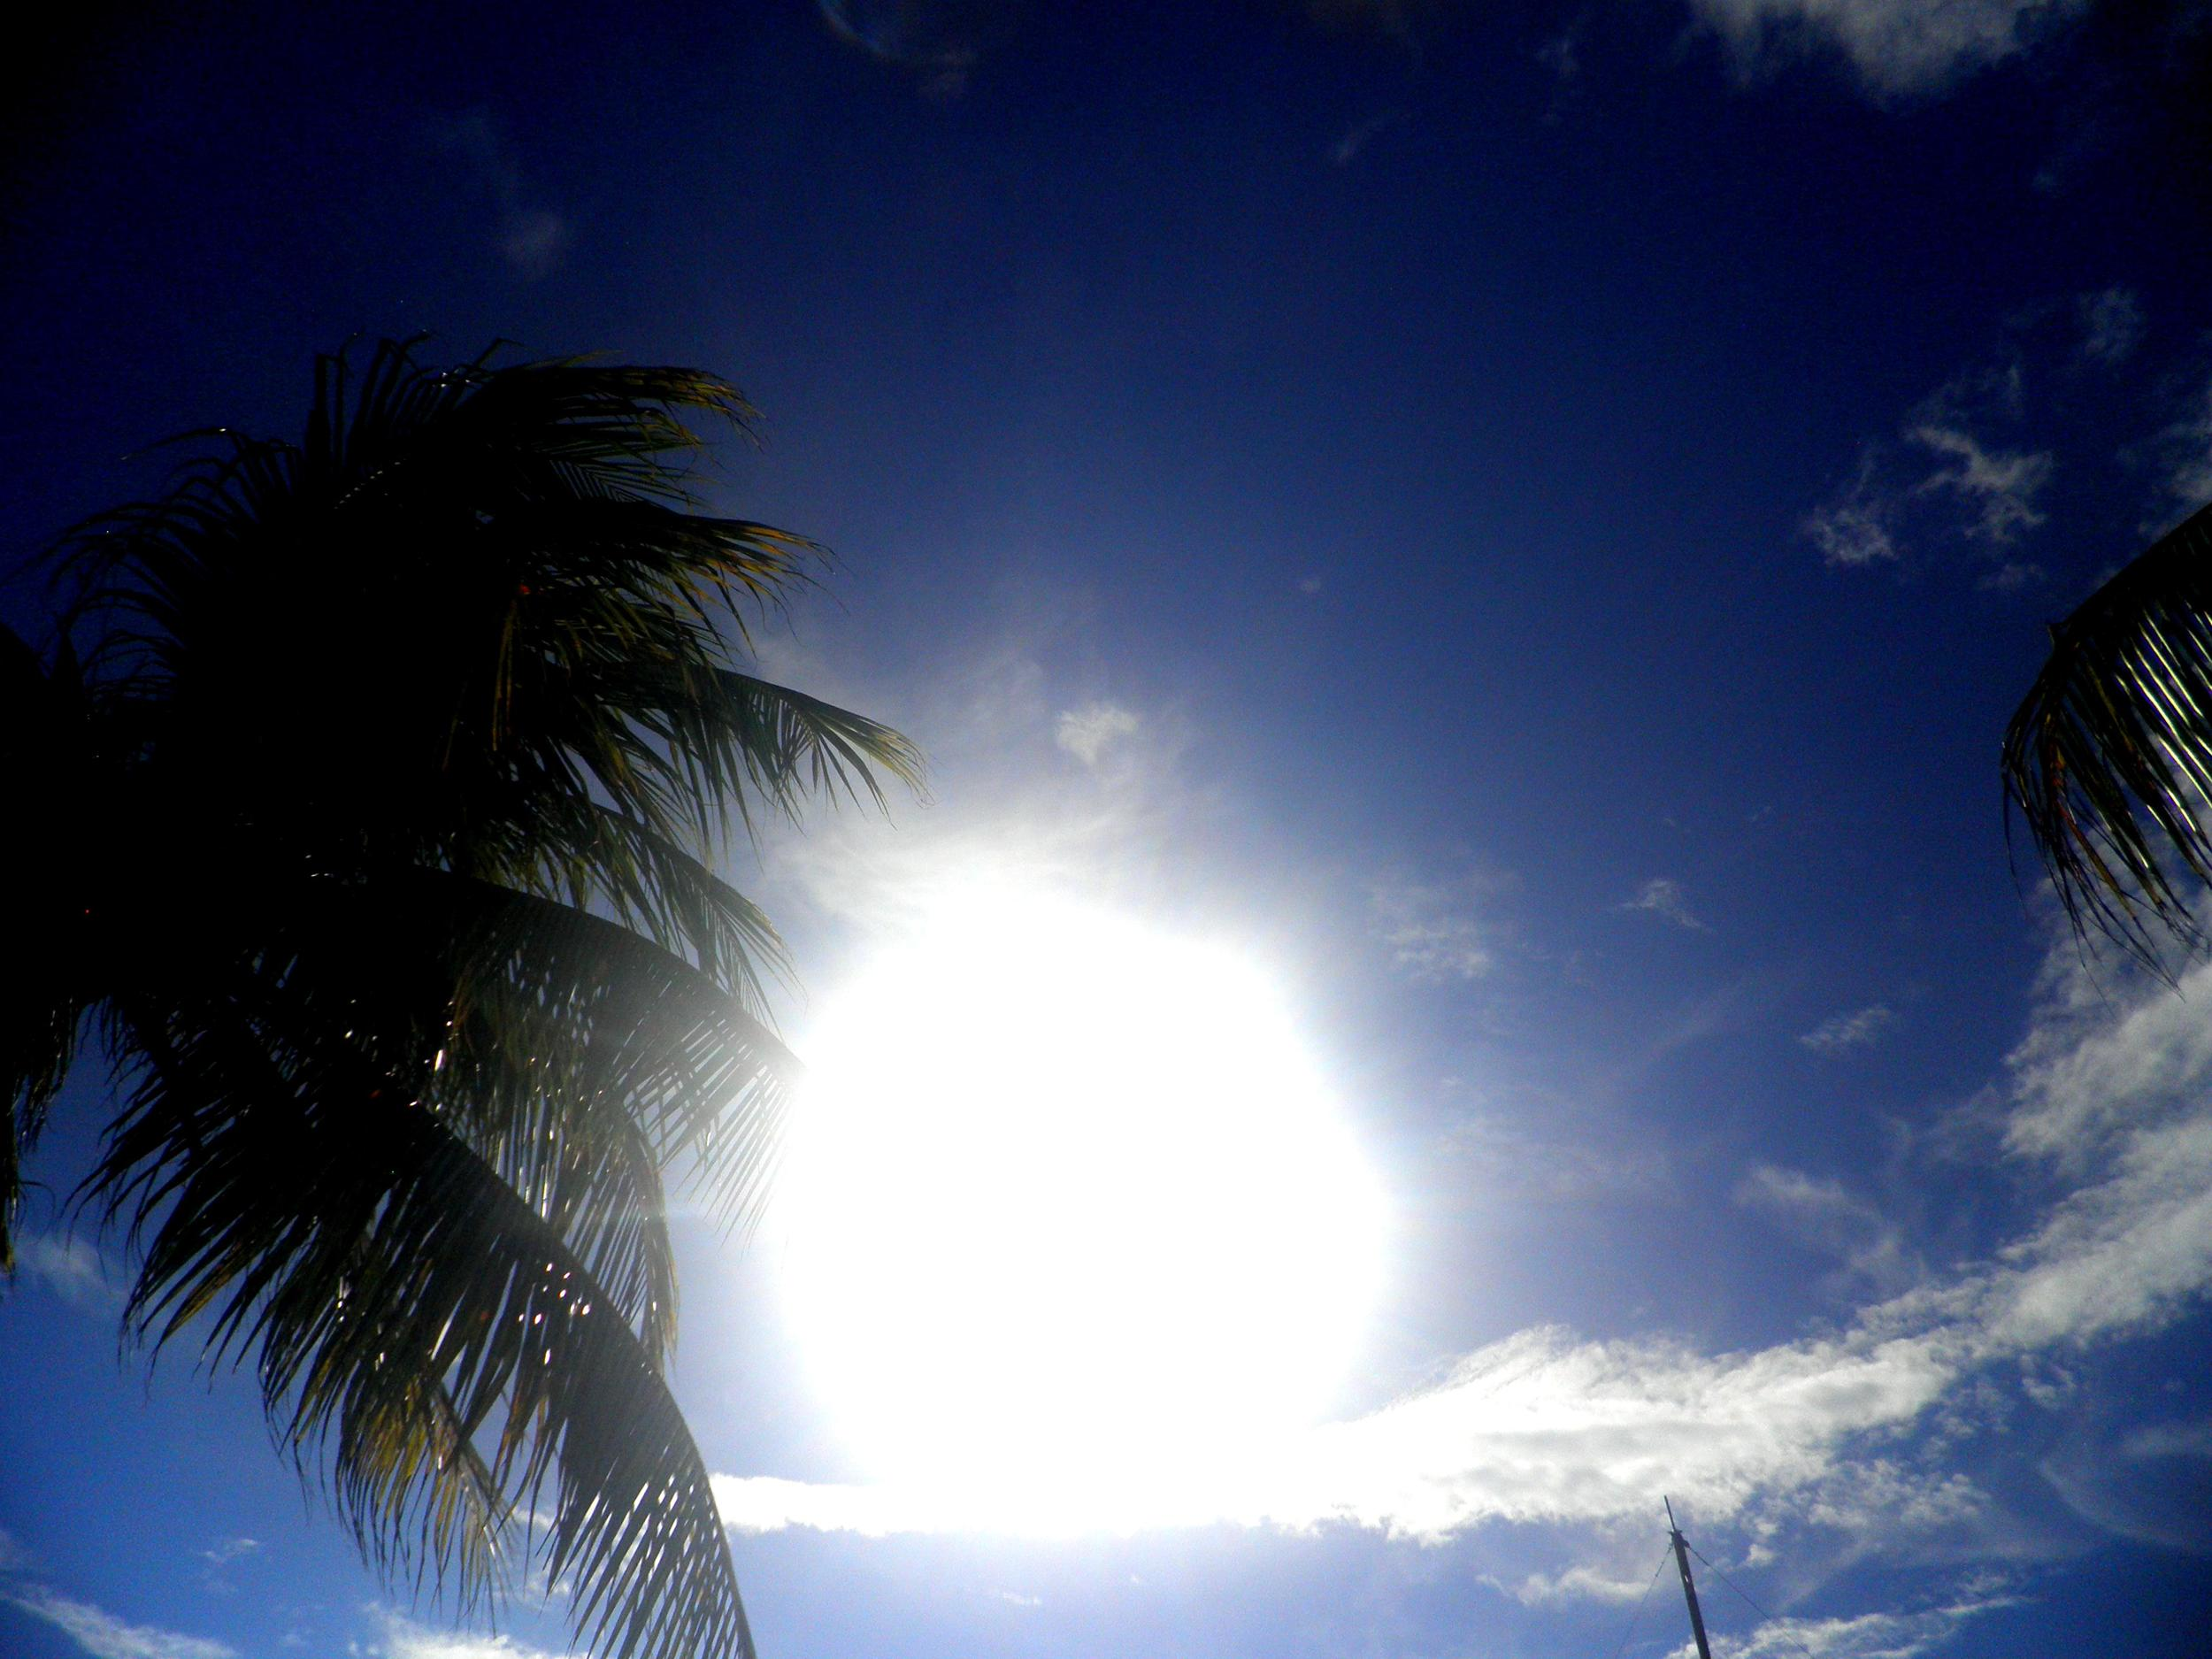 A photo of the magnificent sunshine in San Andres, Colombia.